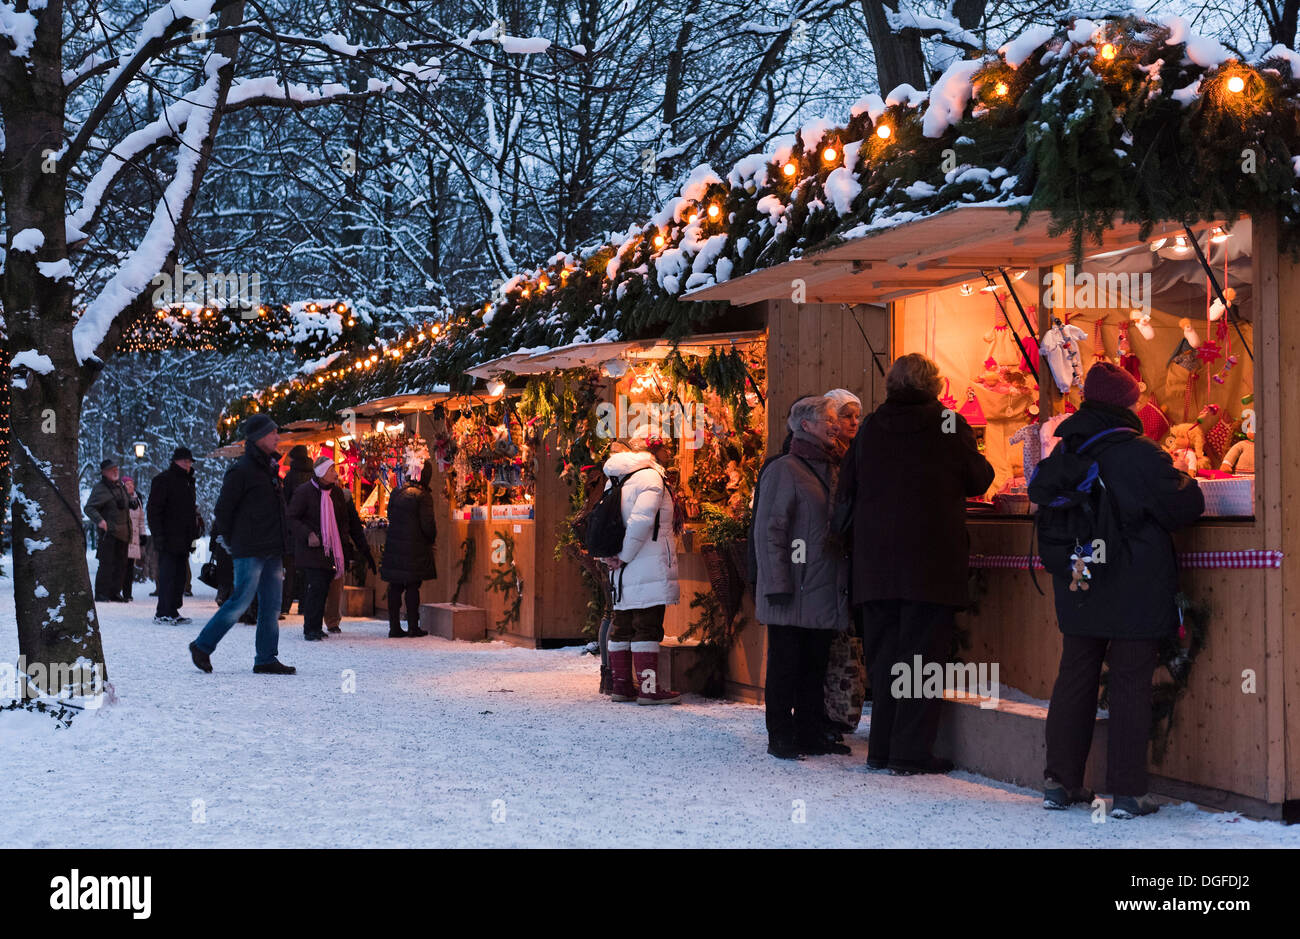 People strolling through the Christmas market in the English Garden, Munich, Upper Bavaria, Bavaria, Germany - Stock Image